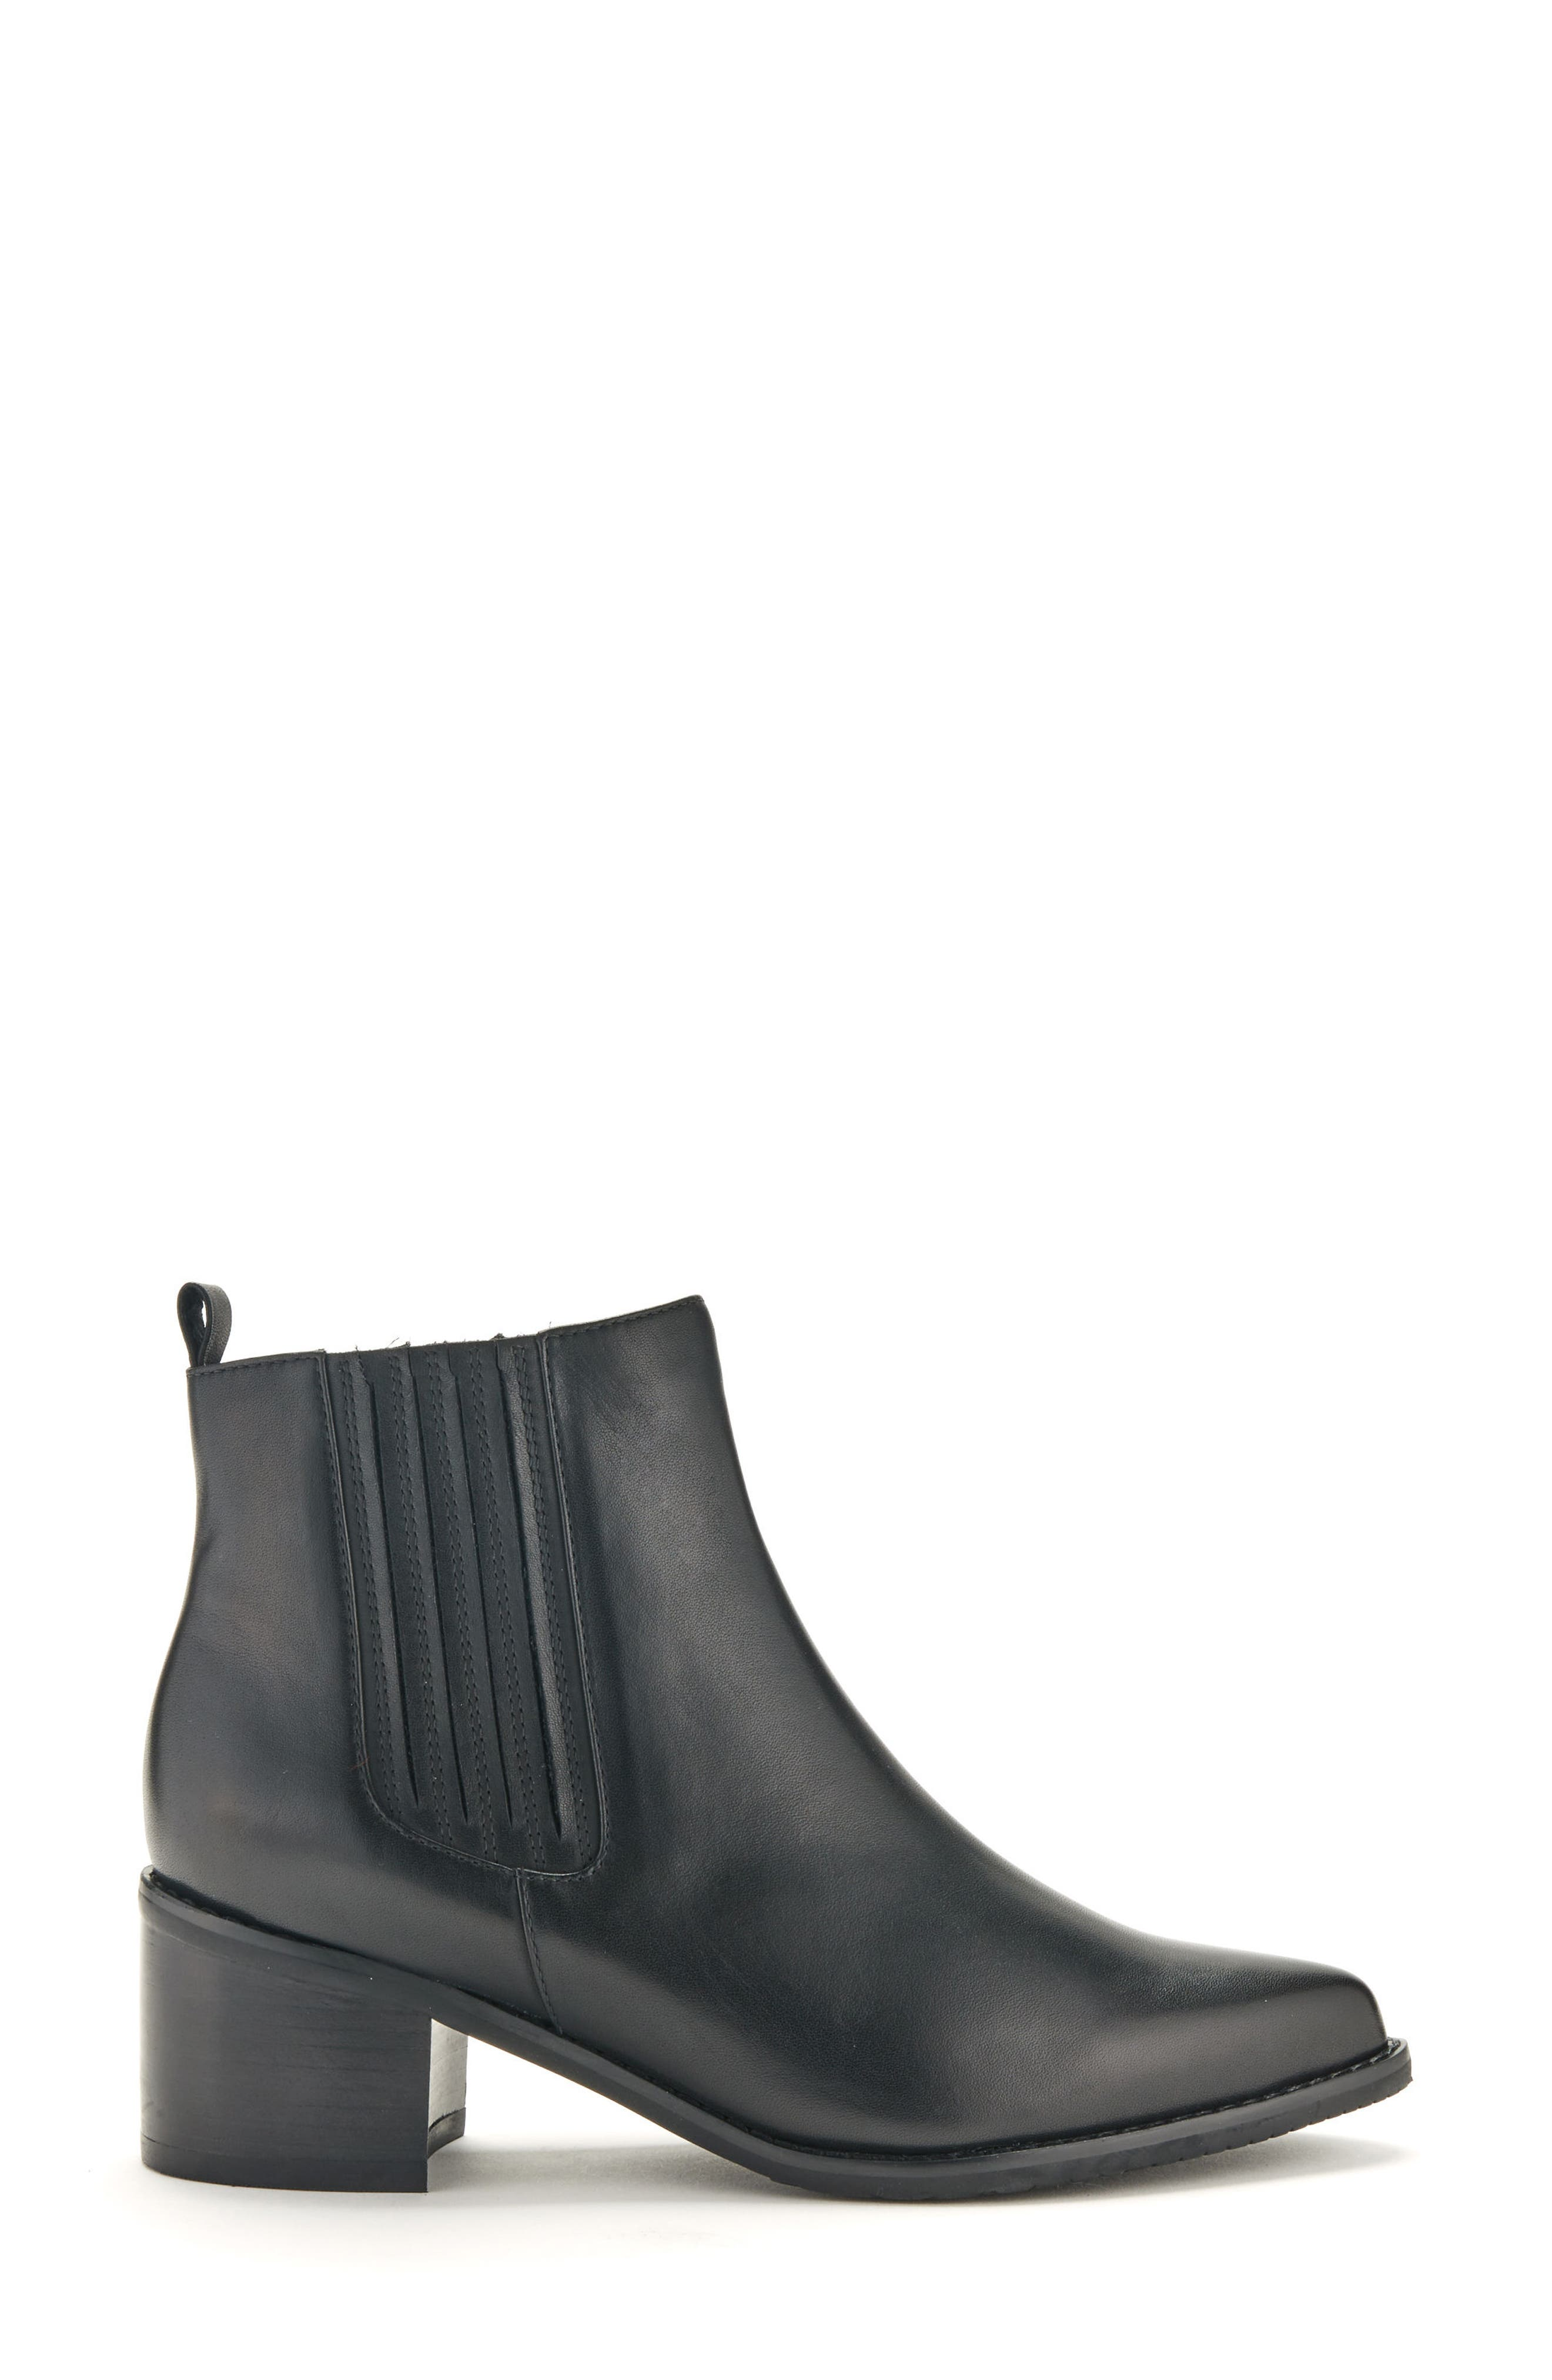 Elvina Waterproof Bootie,                             Alternate thumbnail 3, color,                             Black Leather